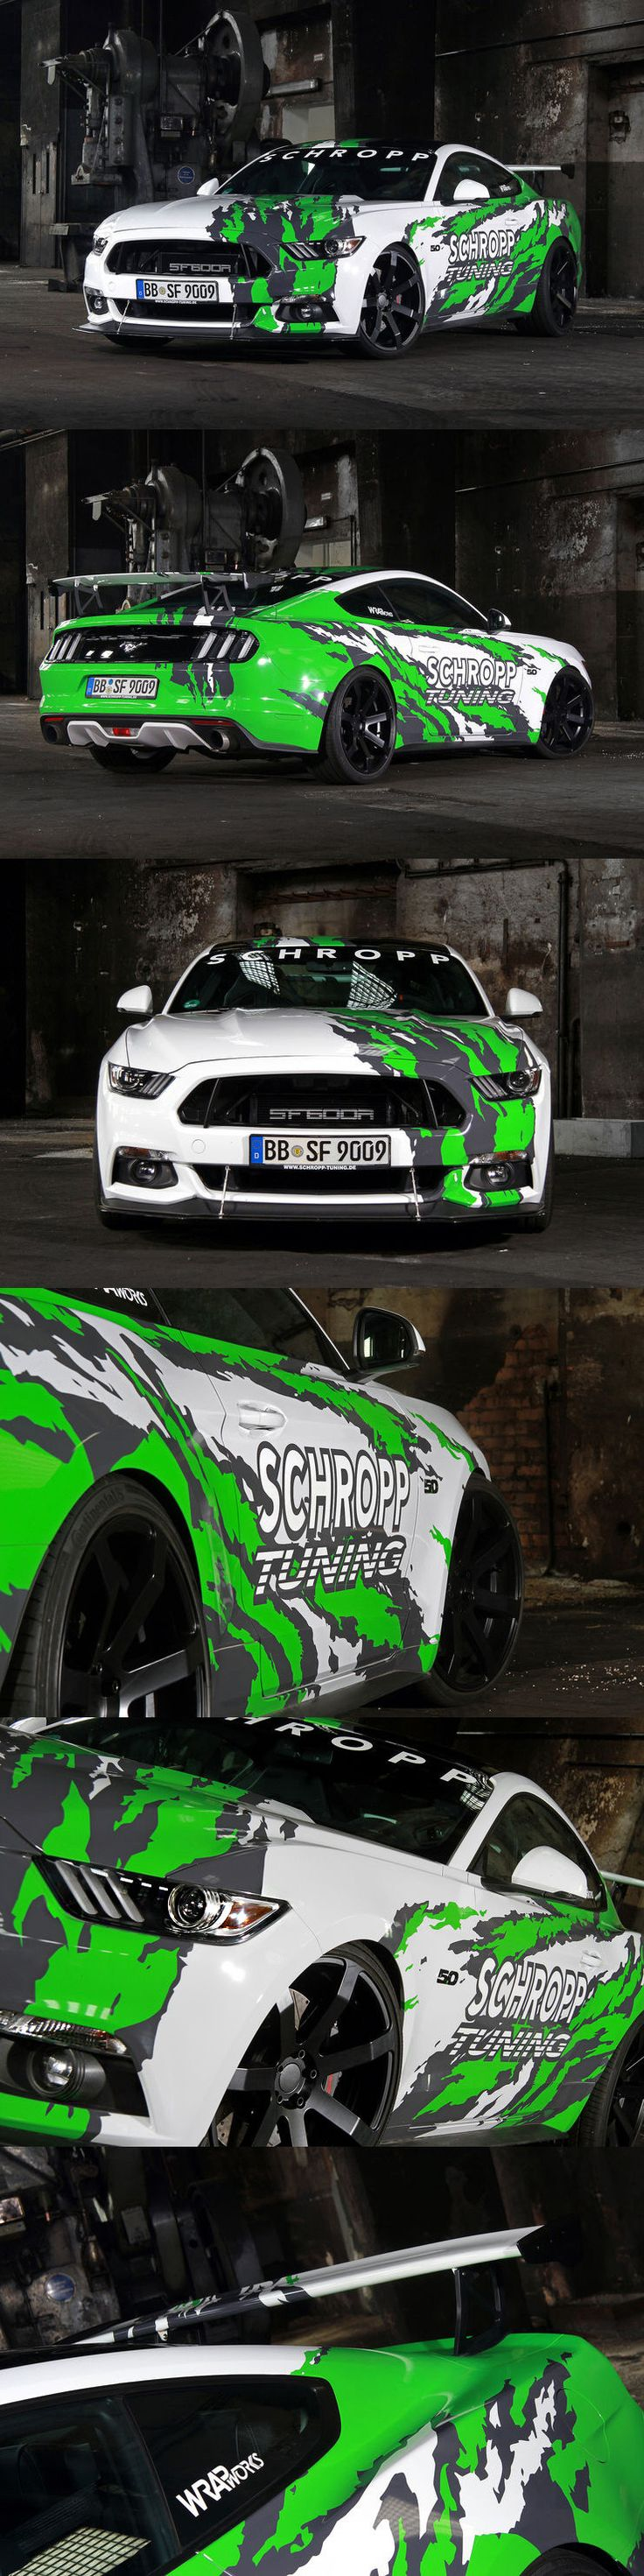 Ford Mustang GT part wrap for Schropp Tuning